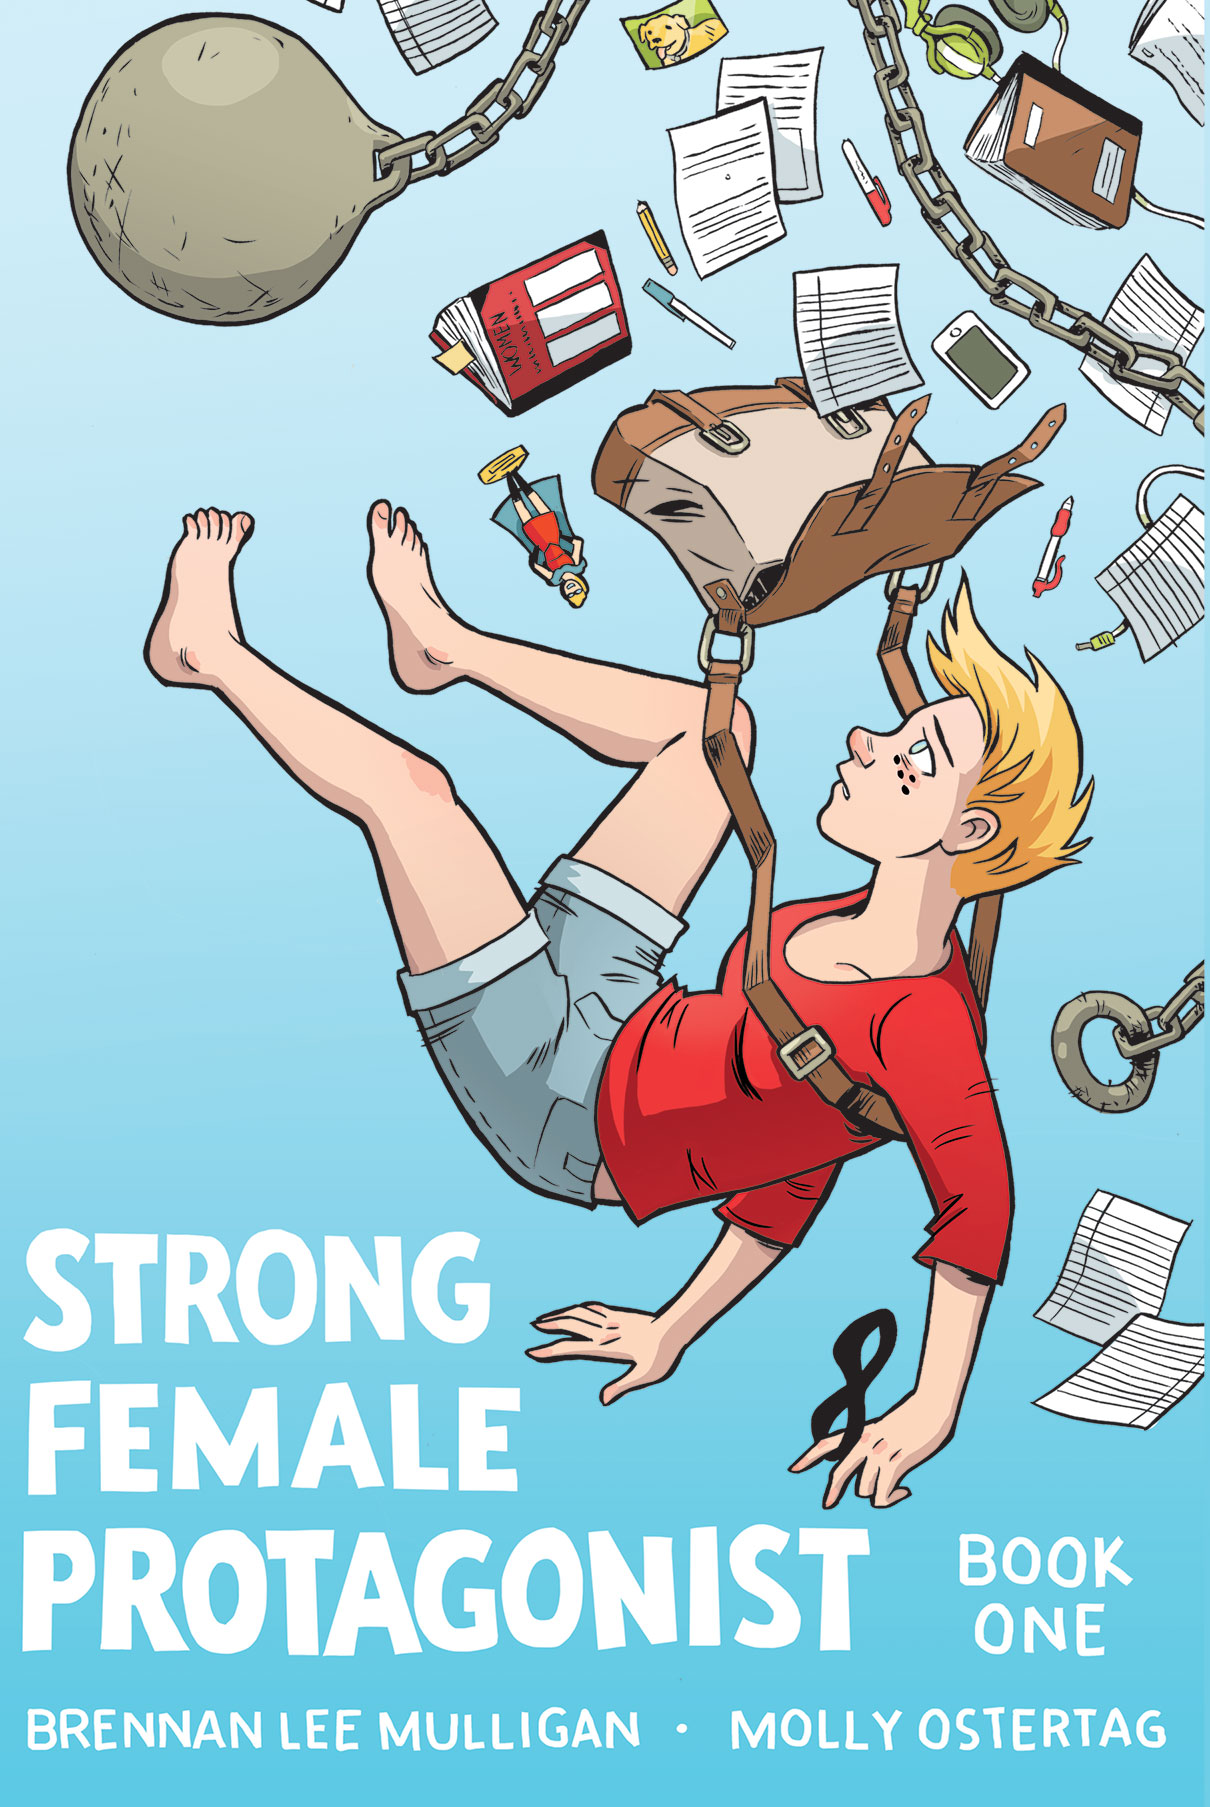 Strong Female Protagonist cover 200dpi